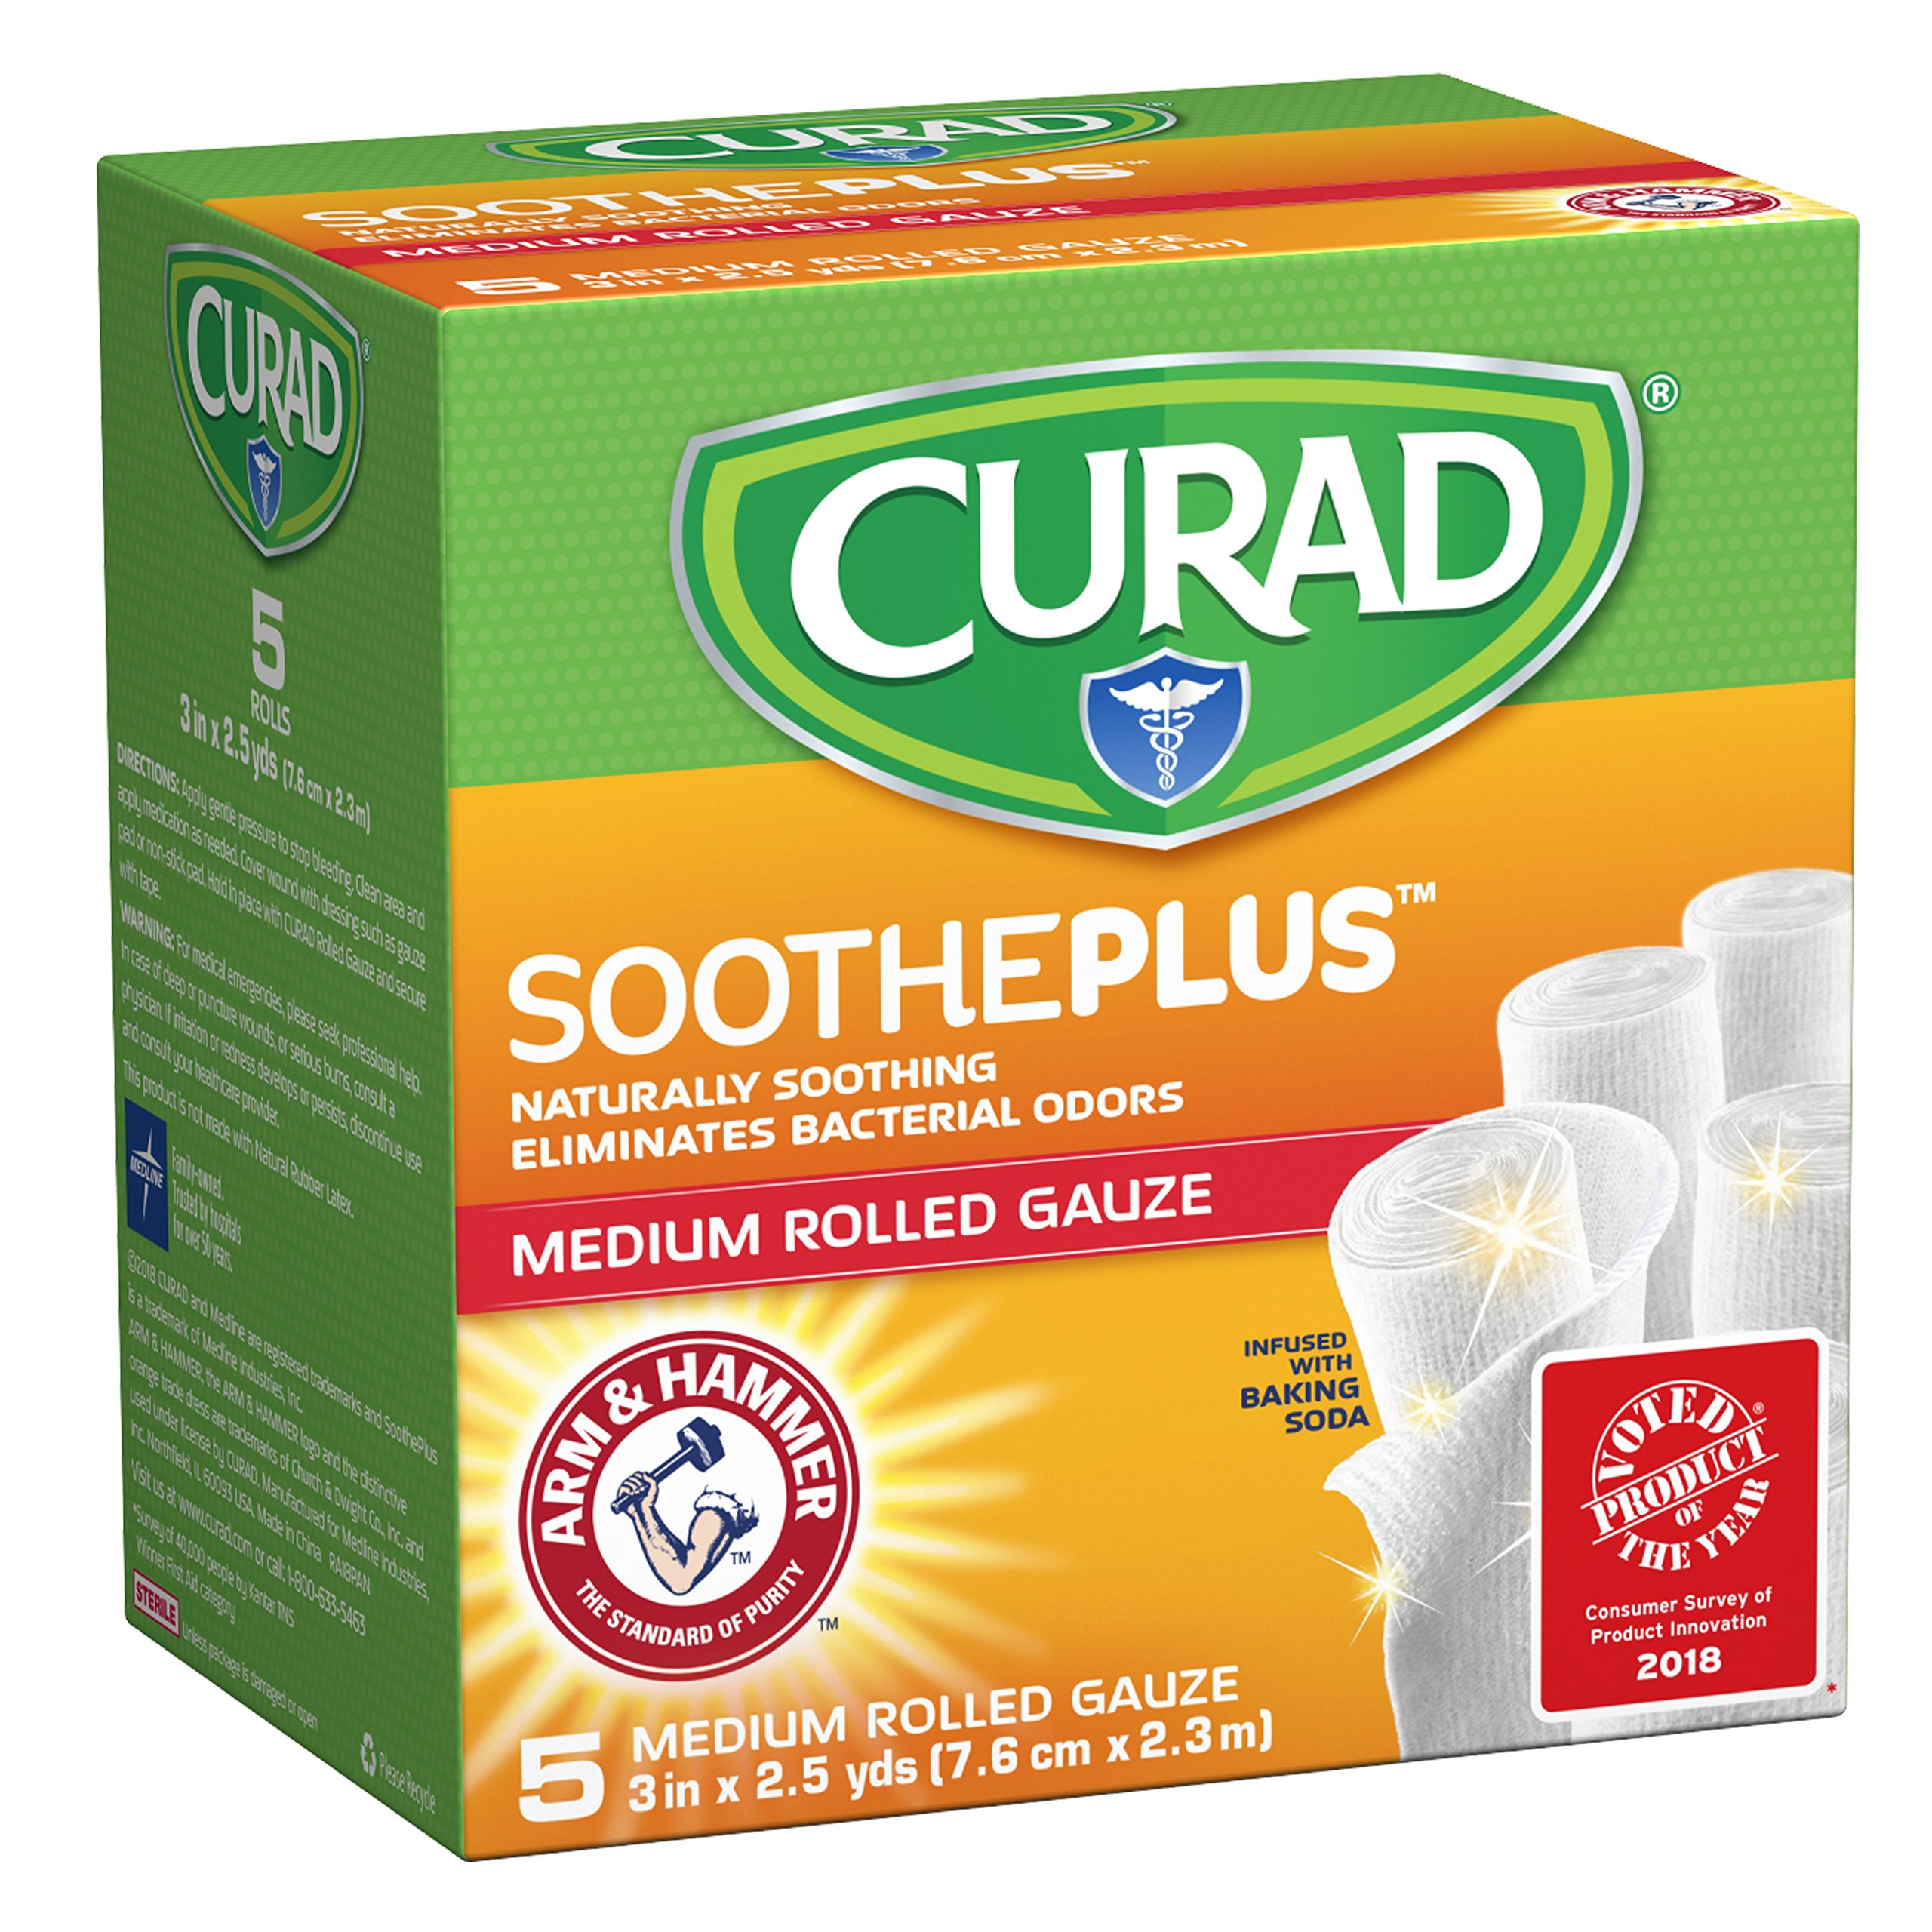 "CURAD SoothePLUS Rolled Gauze with ARM & Hammer Baking Soda, 3"" x 2.5 yds, 5 Count"